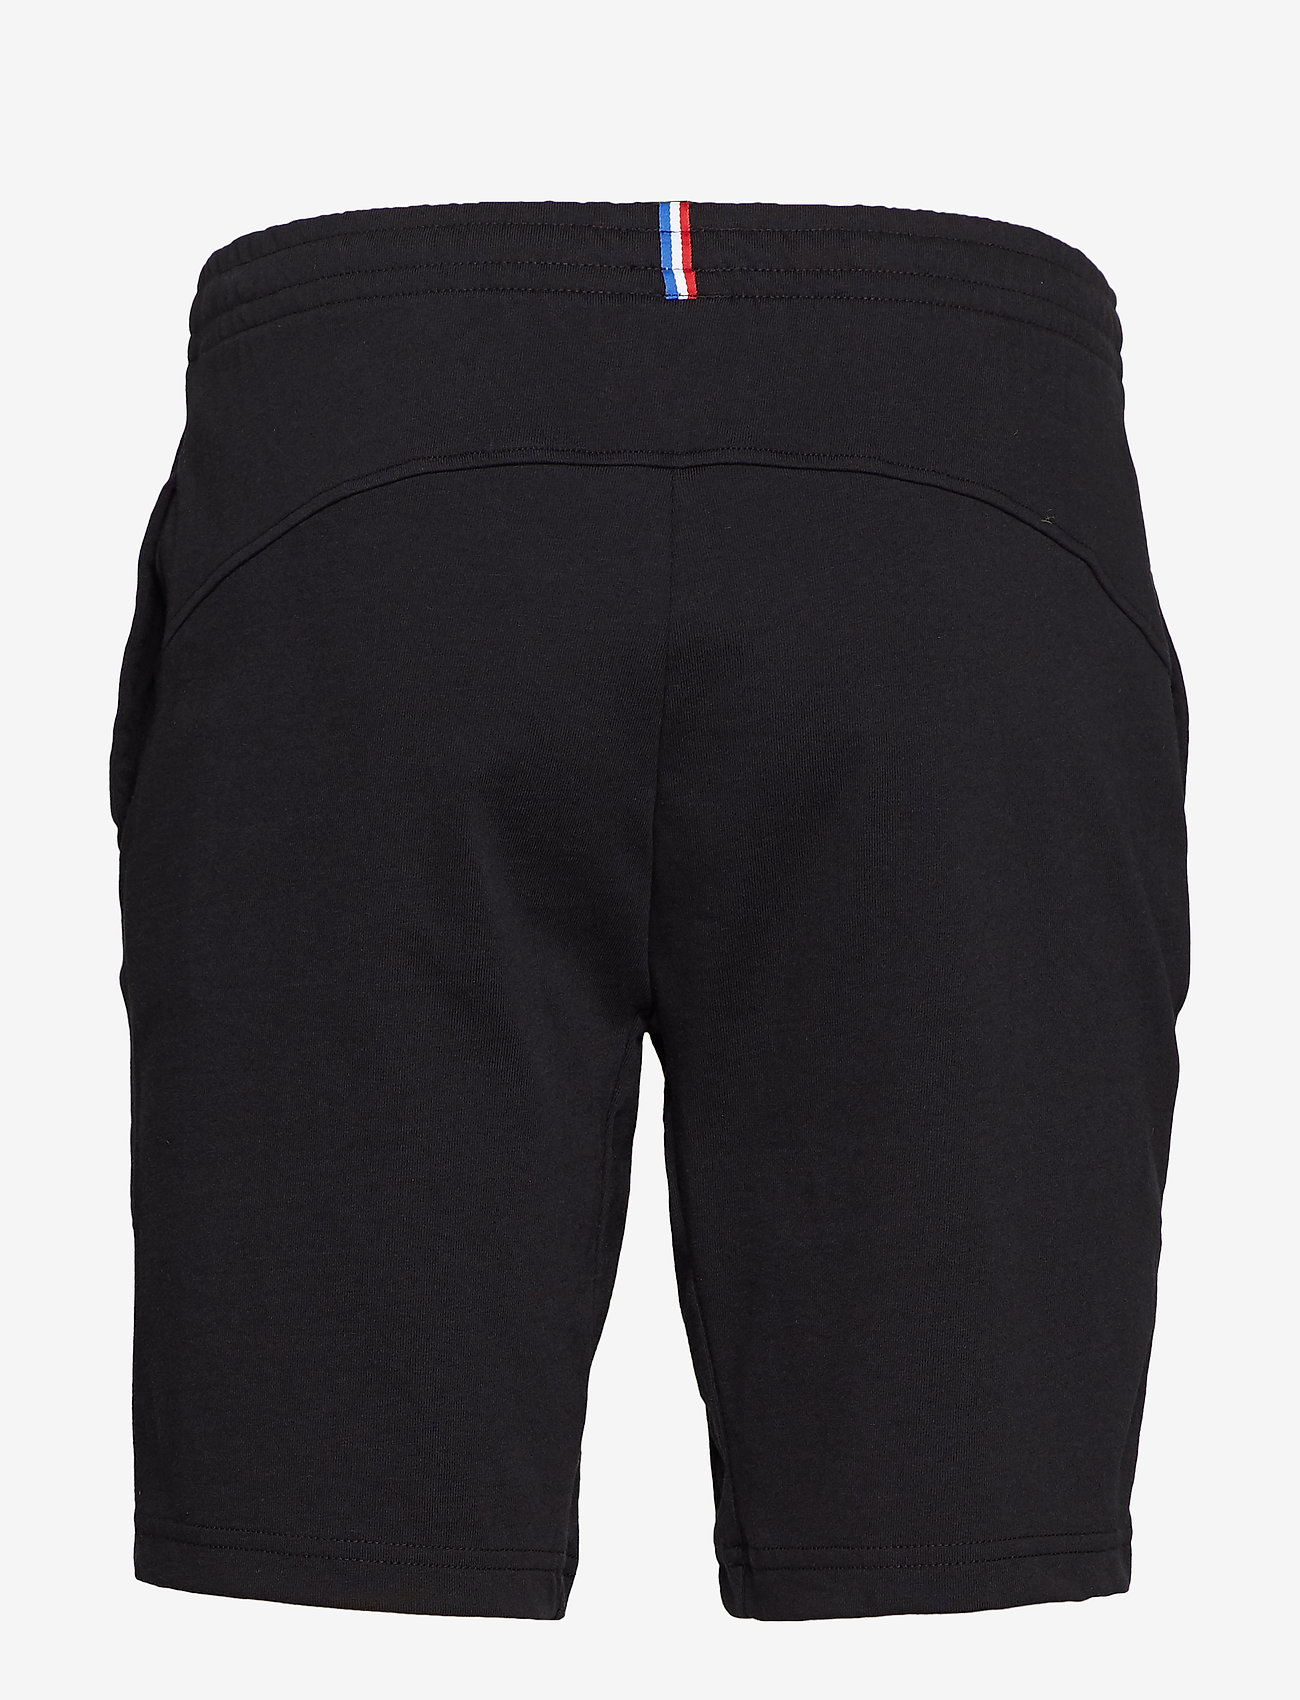 Ess Short Regular N°2 M (Black) (411.75 kr) - Le Coq Sportif